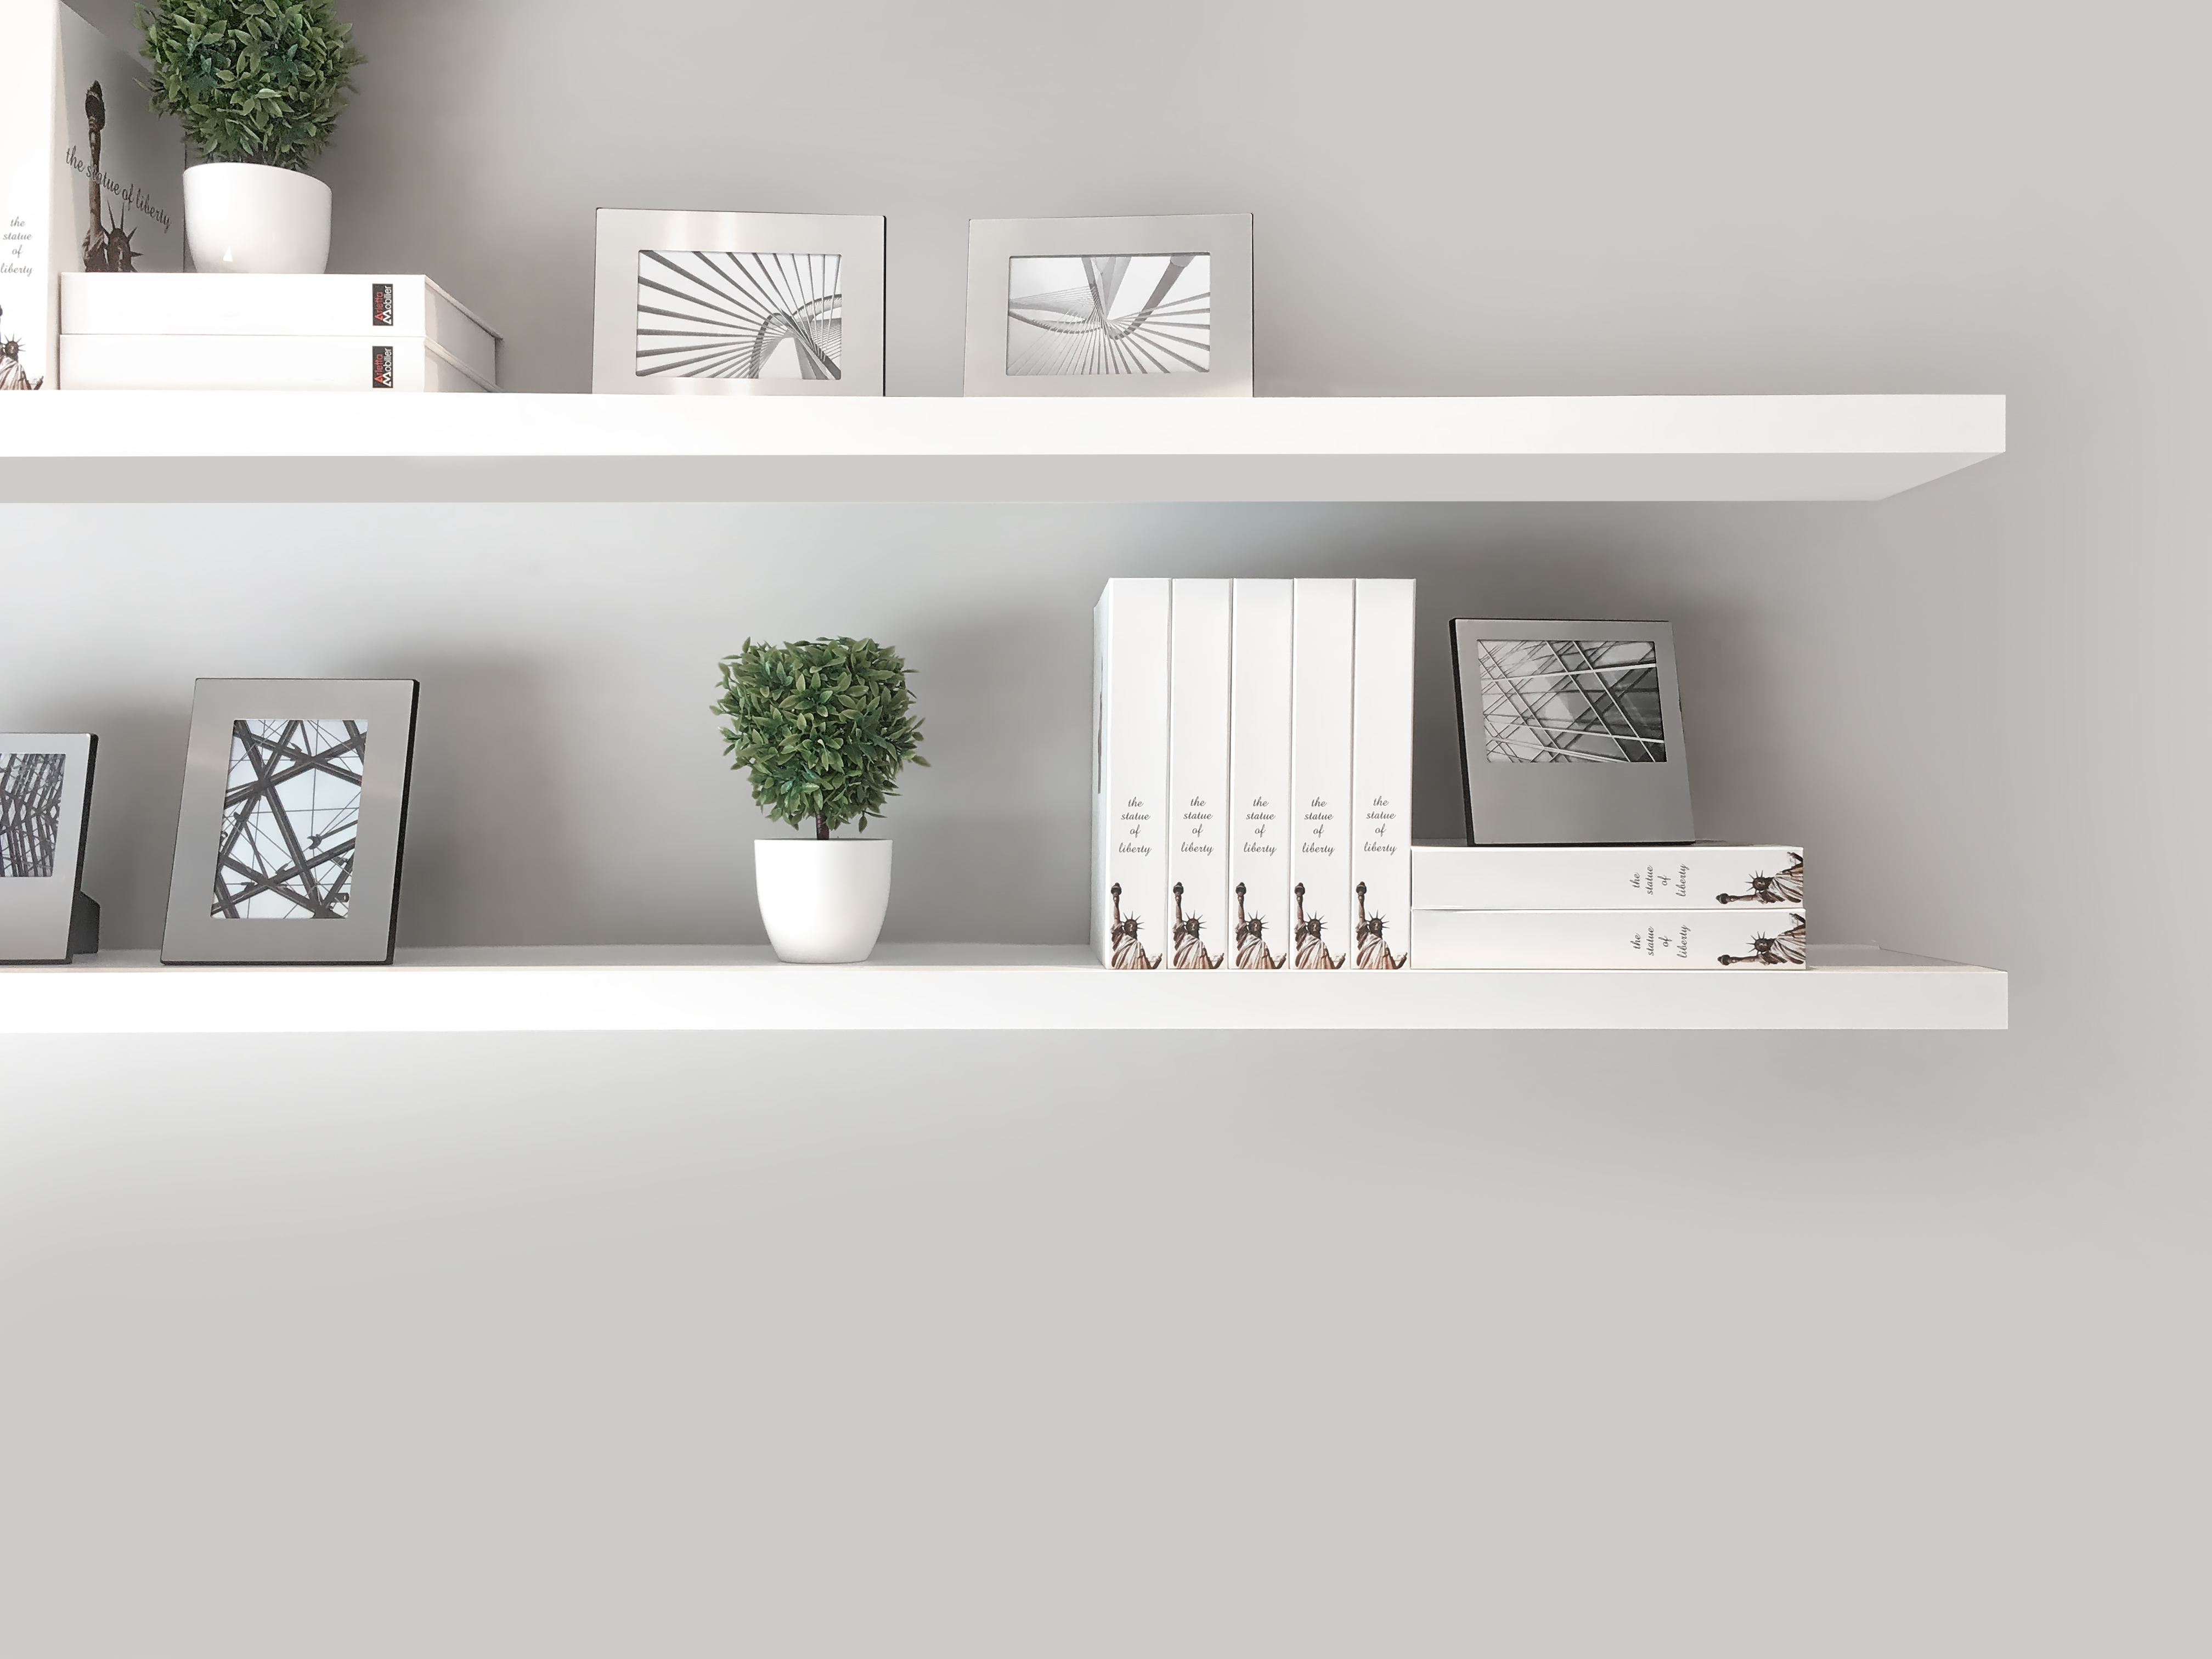 How To Attach Shelves To Metal Wall Studs | Home Guides | Sf